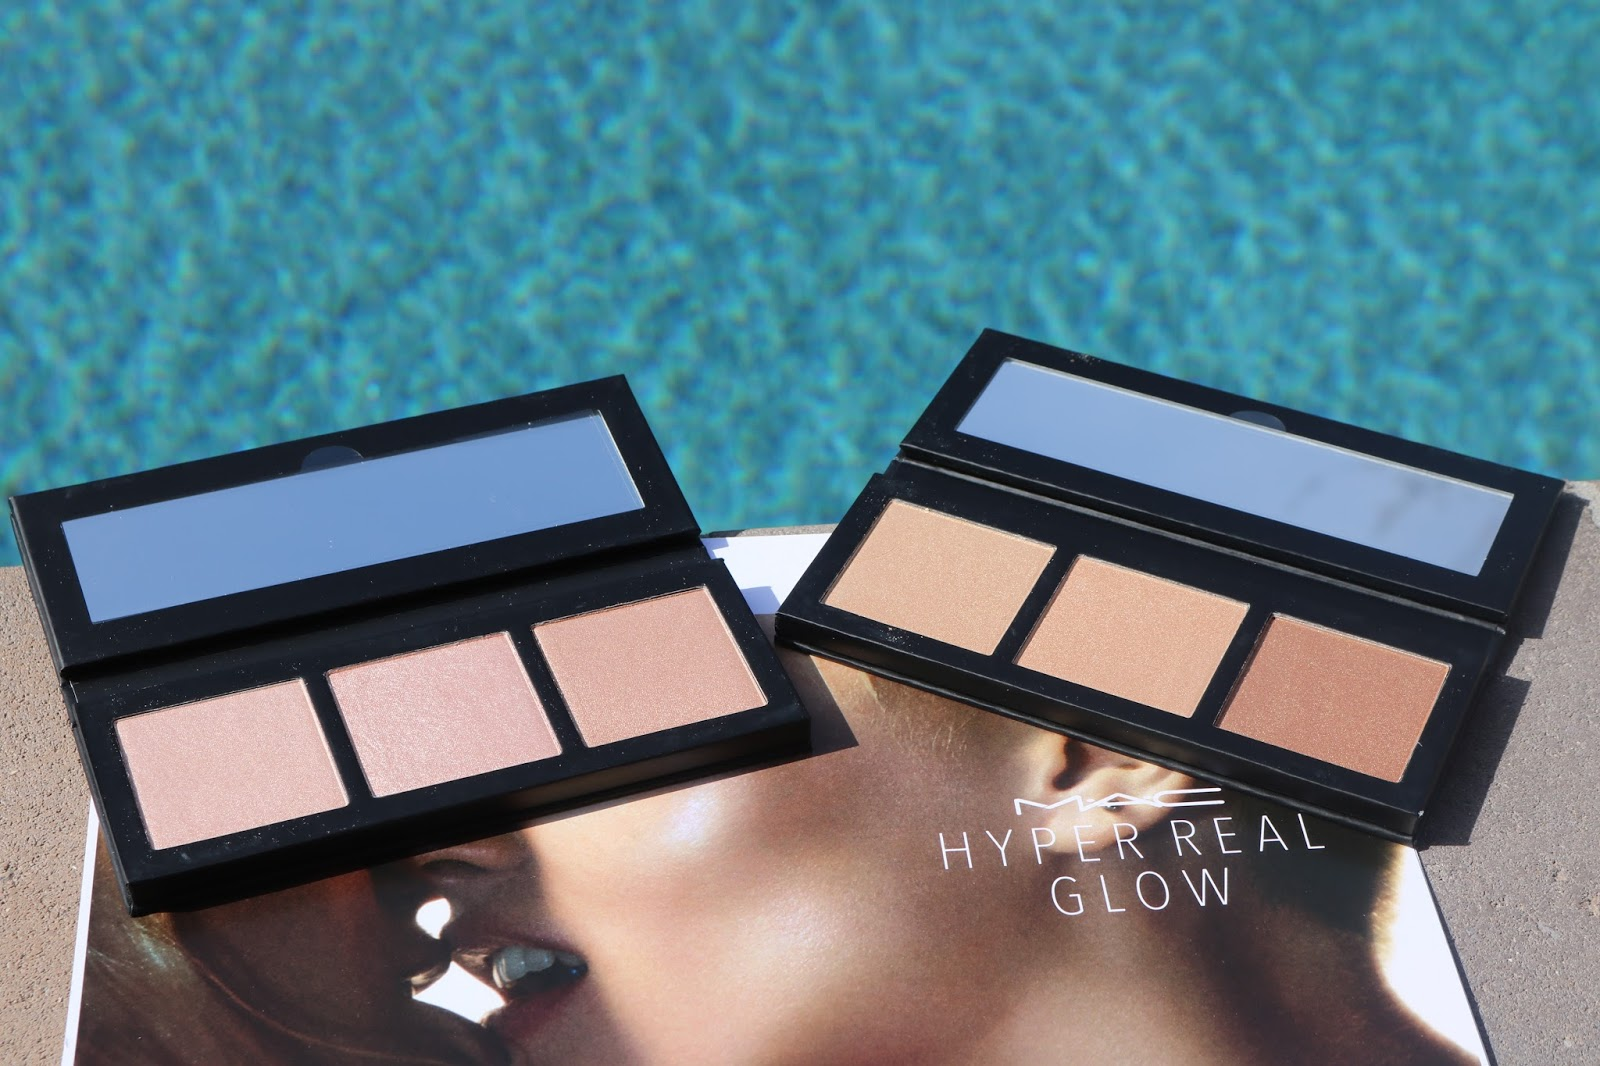 MAC Hyper Real Glow Palettes in Flash + Awe and Get it Glowin'